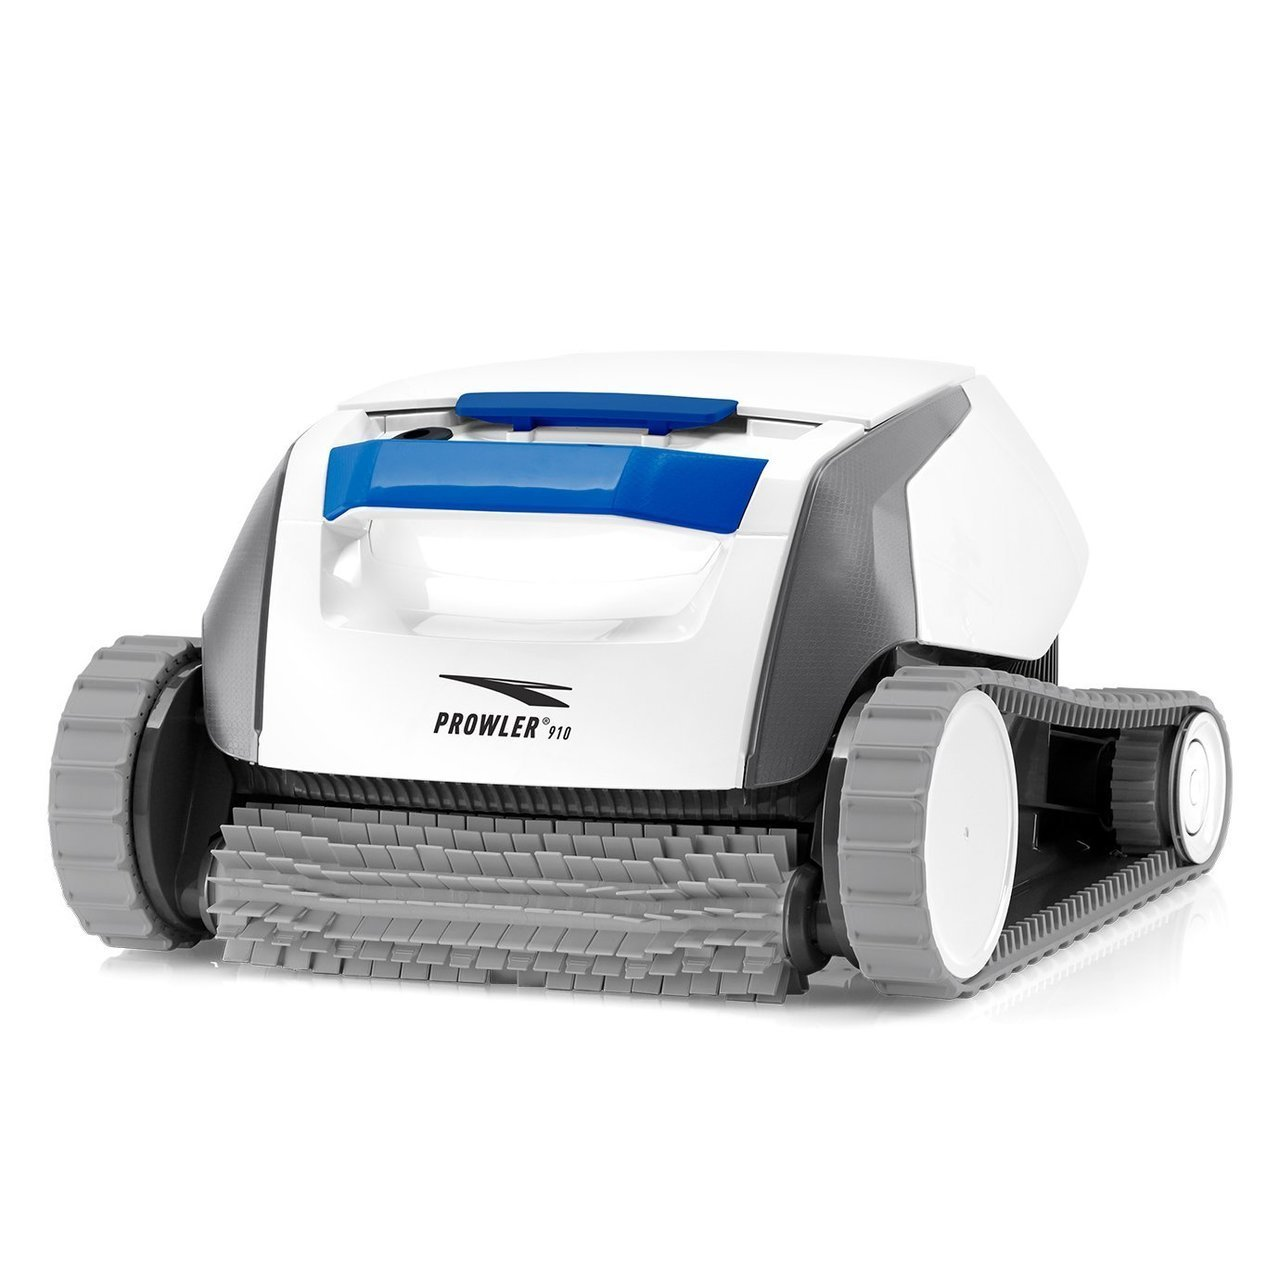 Pentair Kreepy Krauly Prowler 910 Robot Pool Cleaner